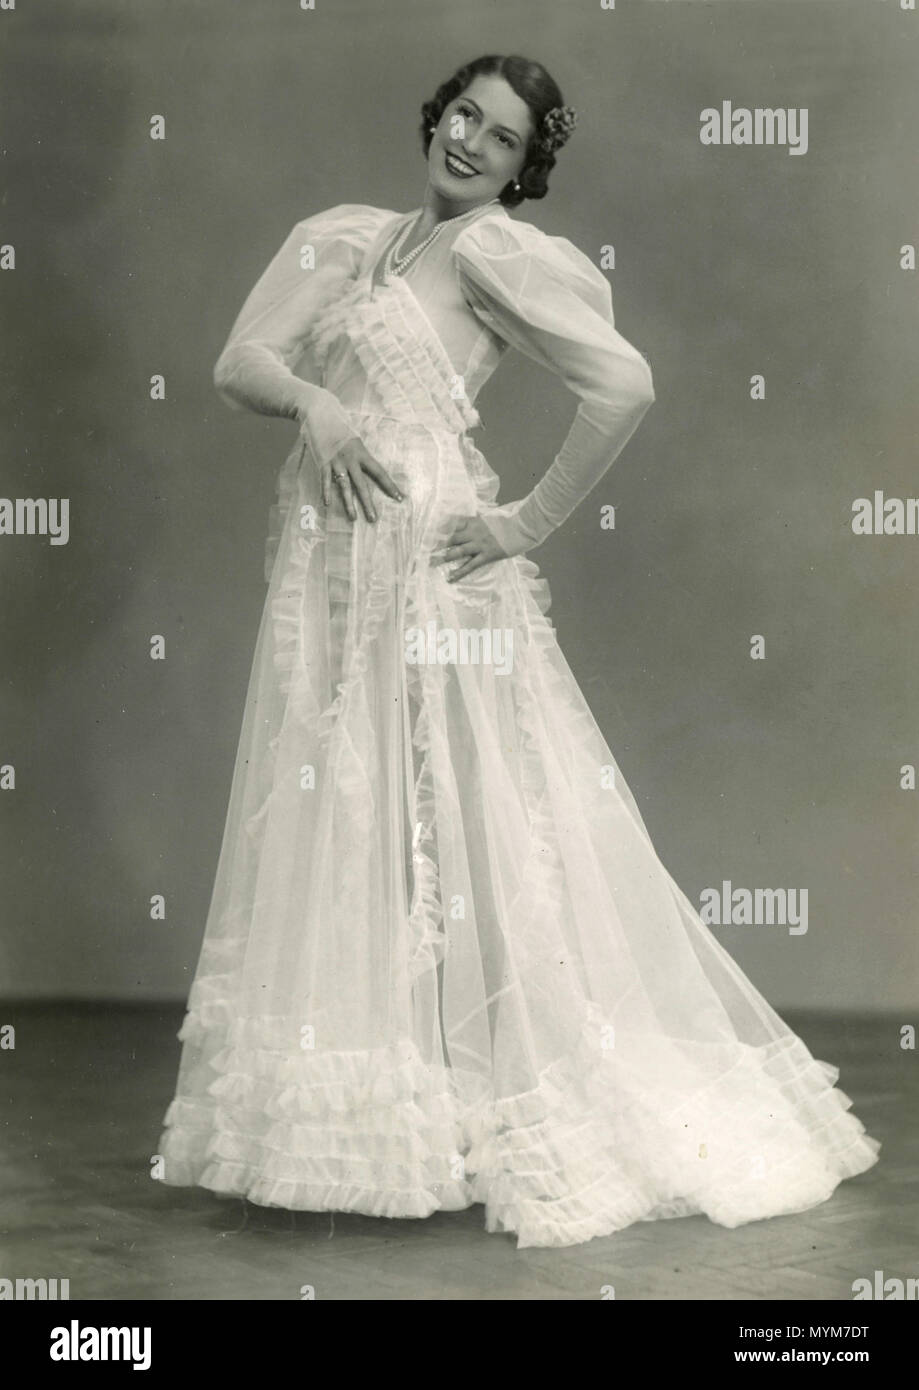 Woman showing a white dress, Italy 1914 - Stock Image